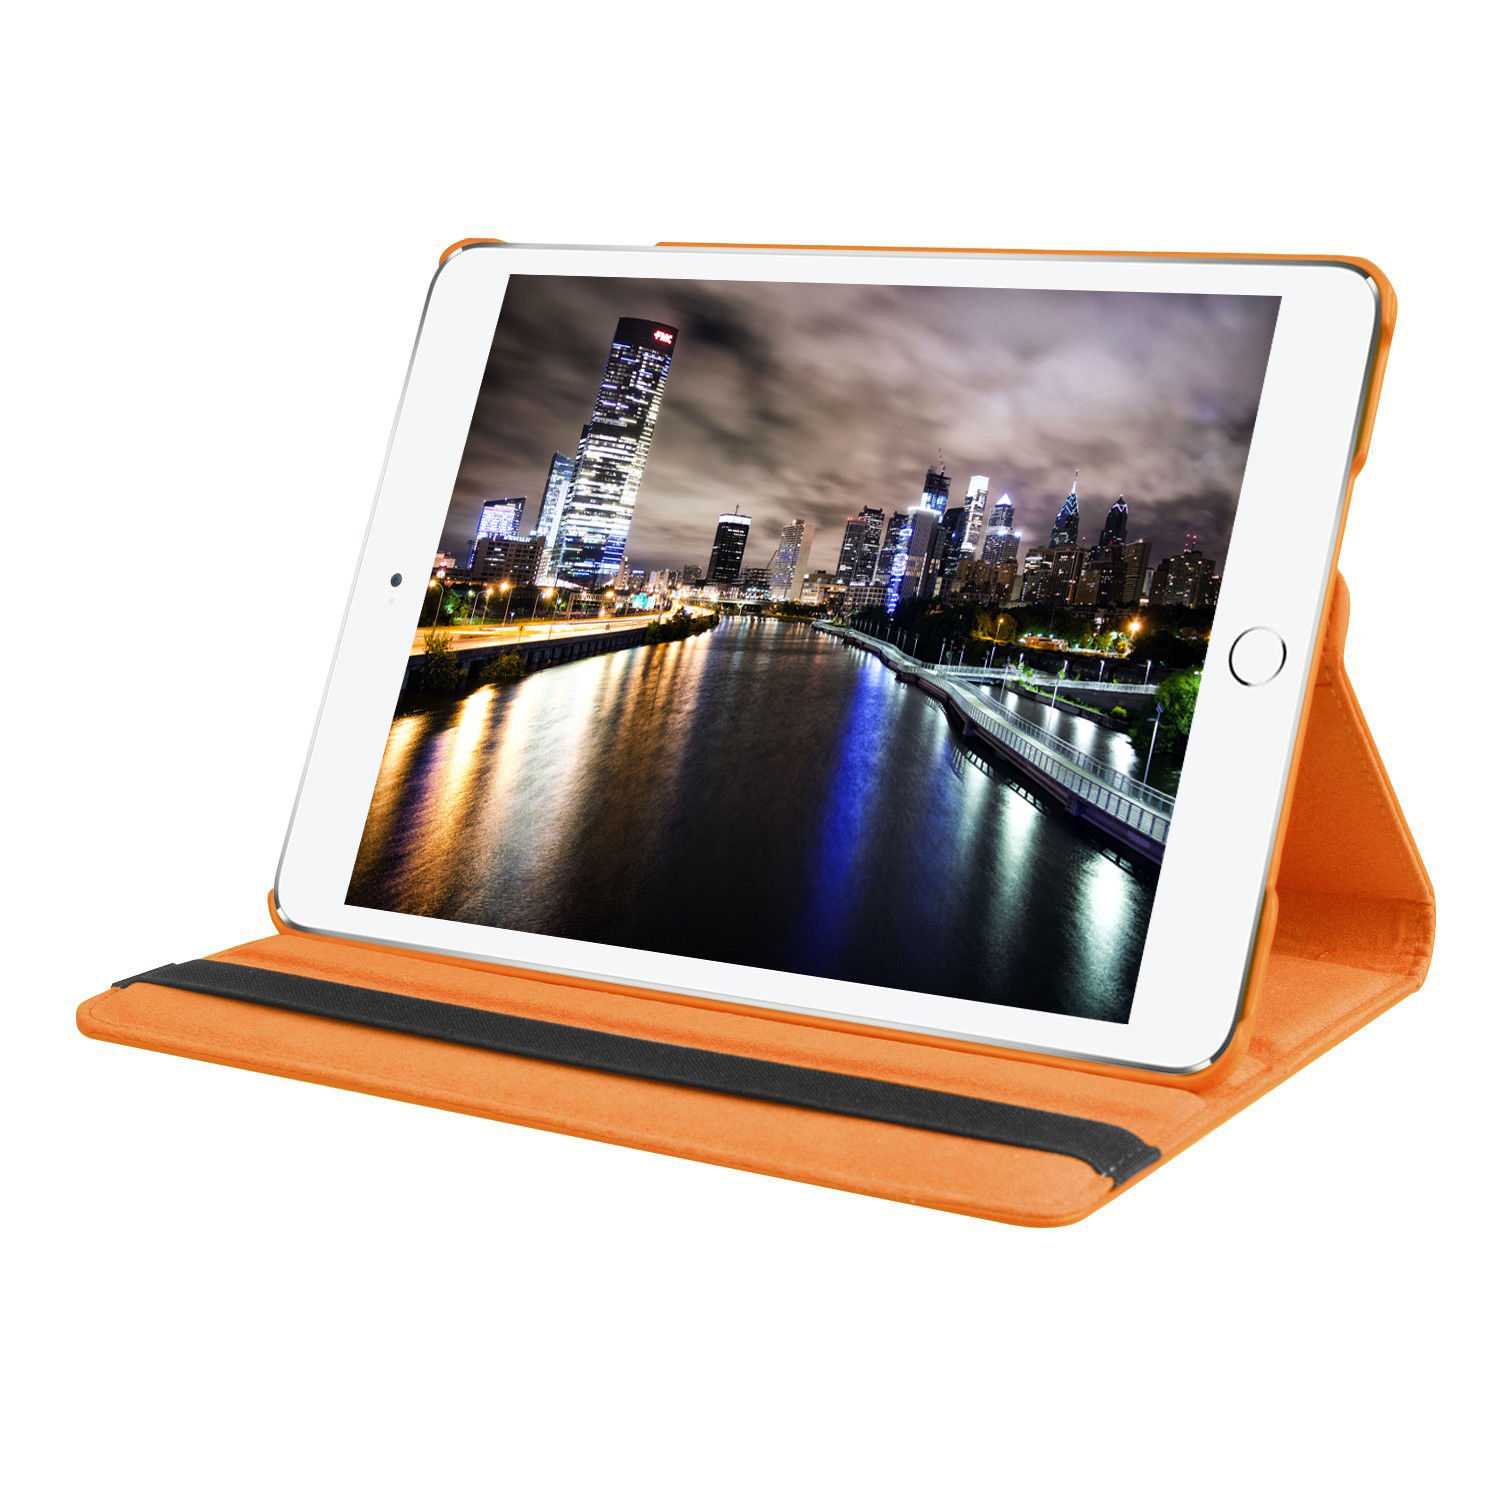 Custodia-per-Apple-iPad-Pro-2017-iPad-Air-3-10-5-Smart-Cover-Case-Custodia-Protettiva miniatura 92